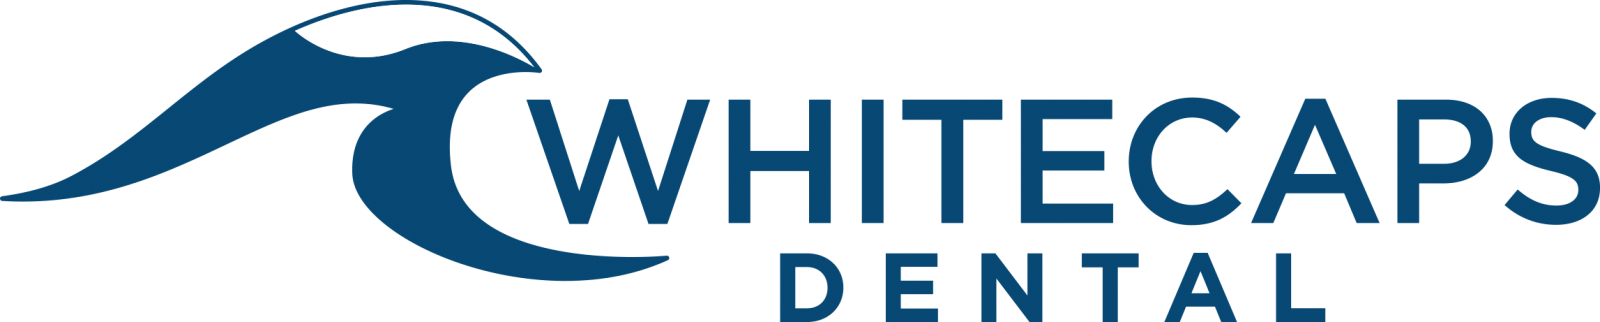 Whitecaps Dental, William Panico-DMD